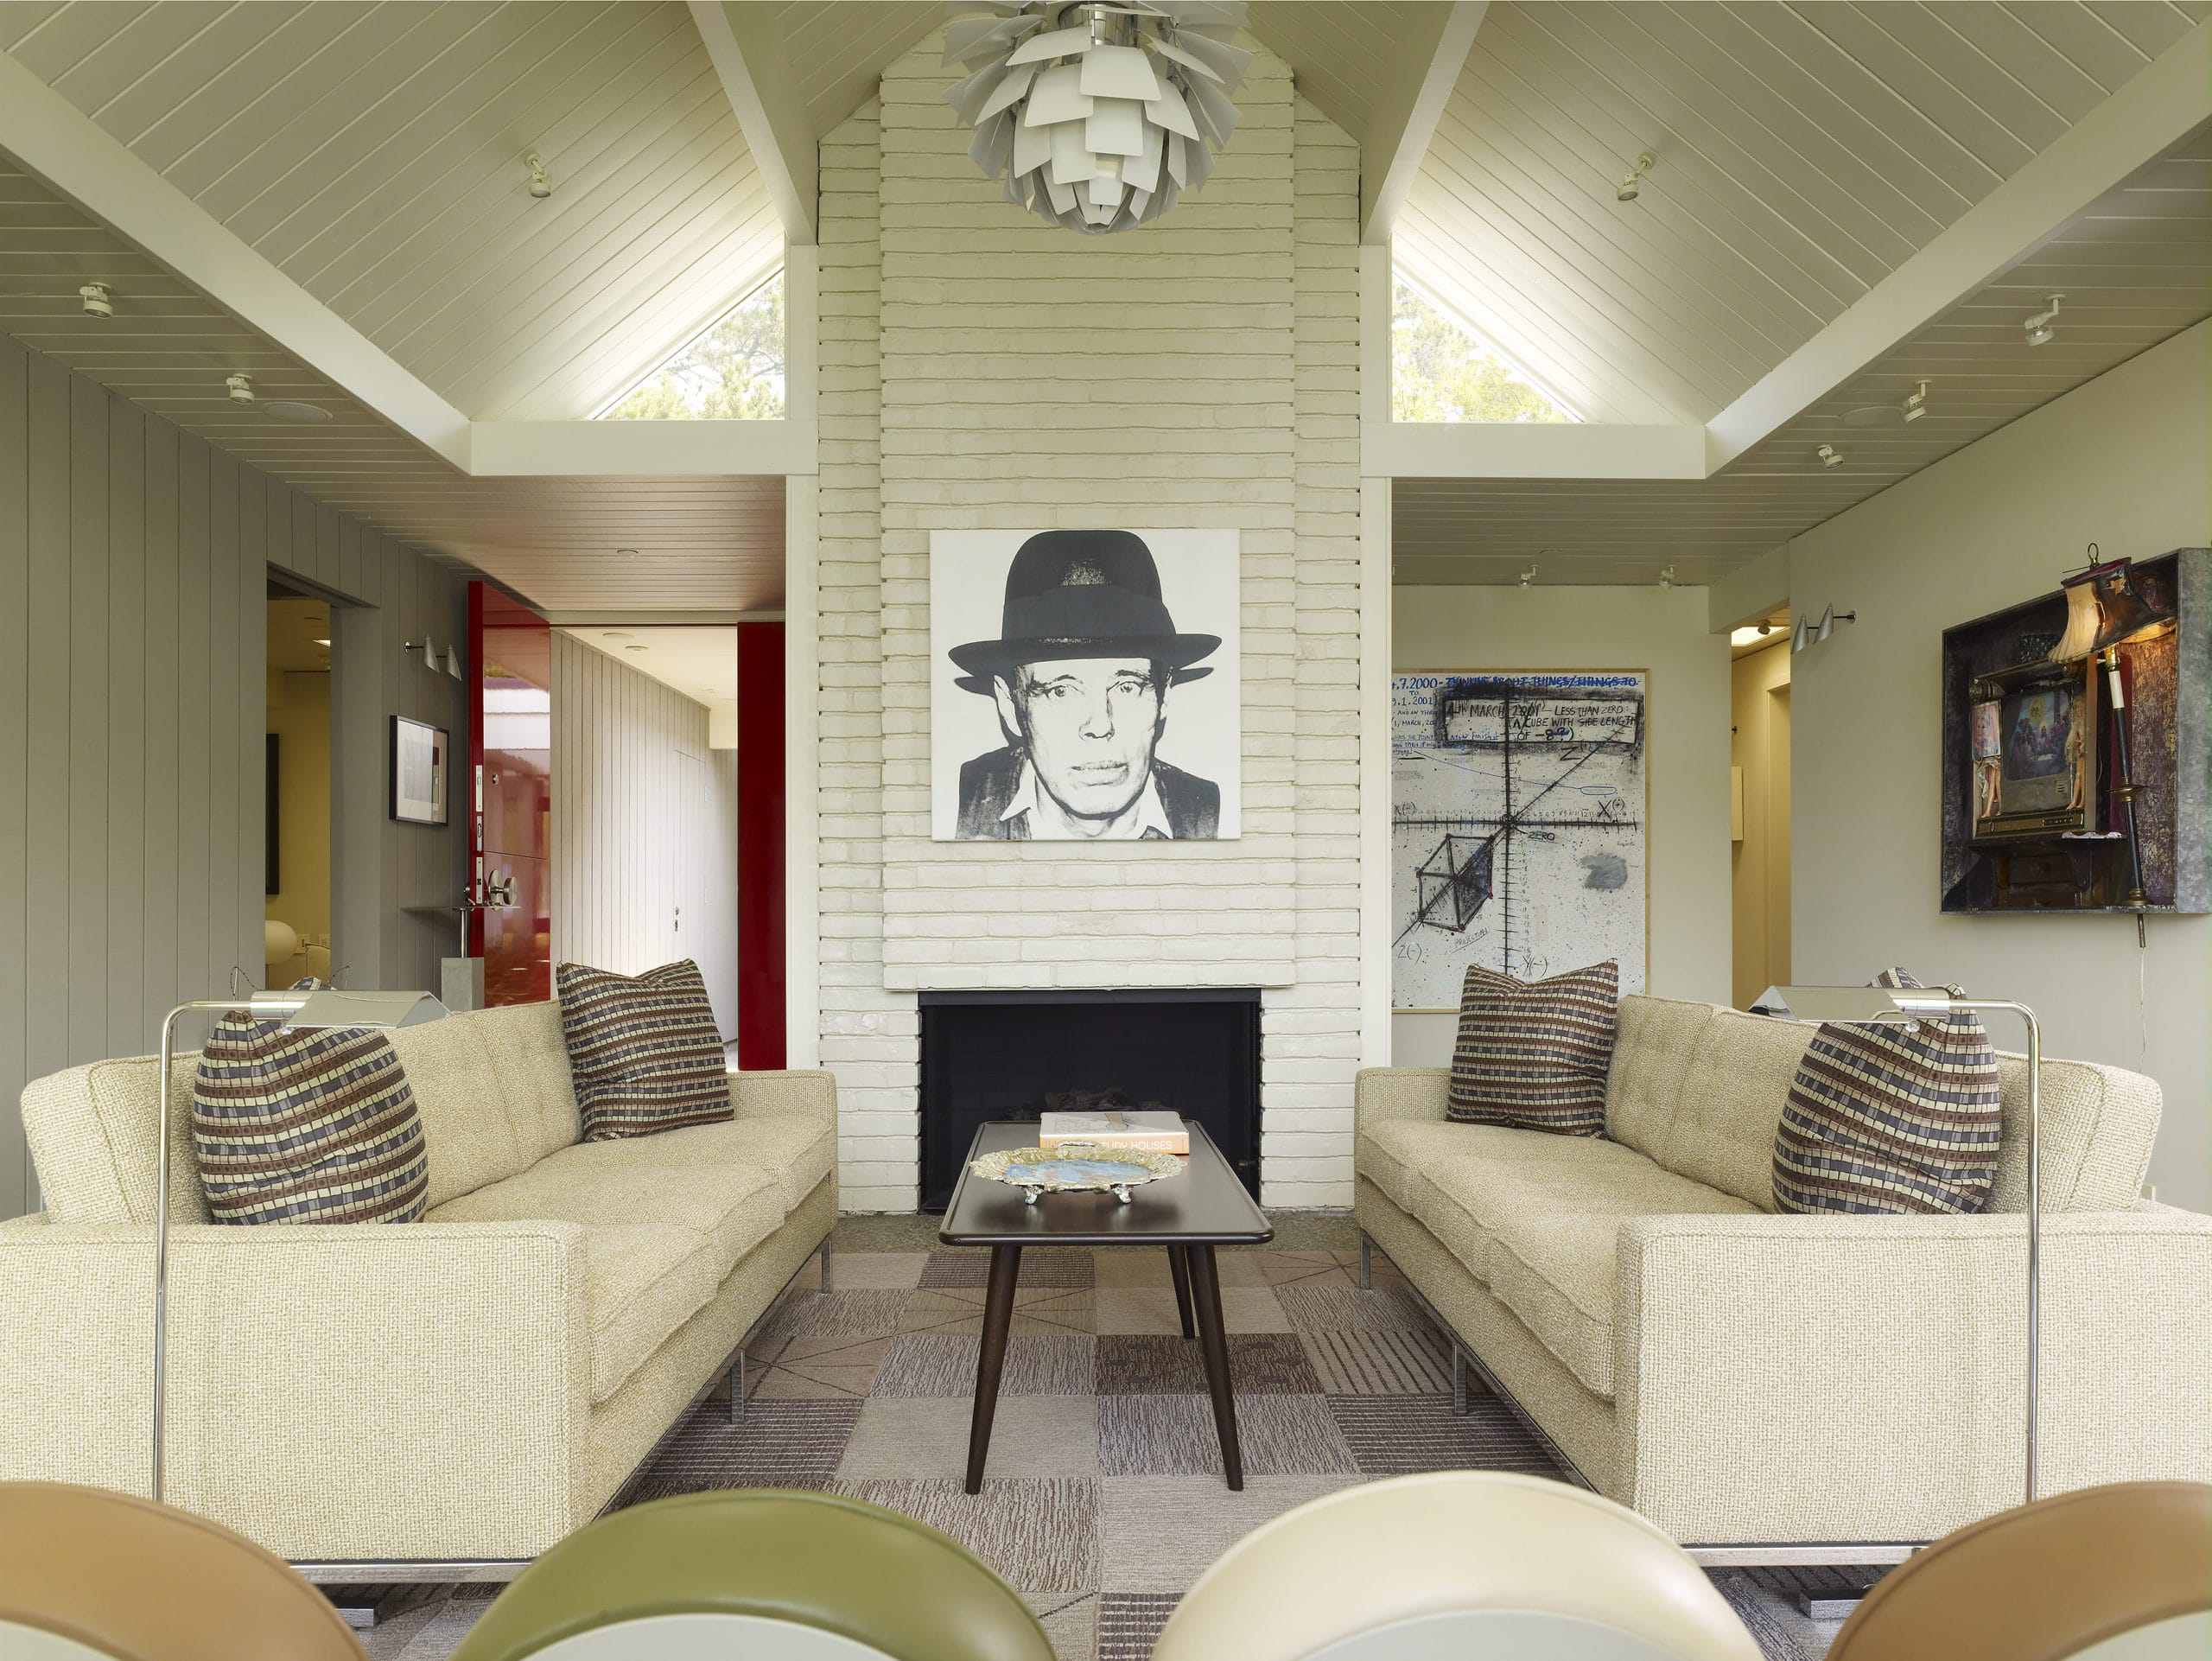 Living room with gray-stained wood walls, a brick fire place with a black and white picture hanging and two couches.